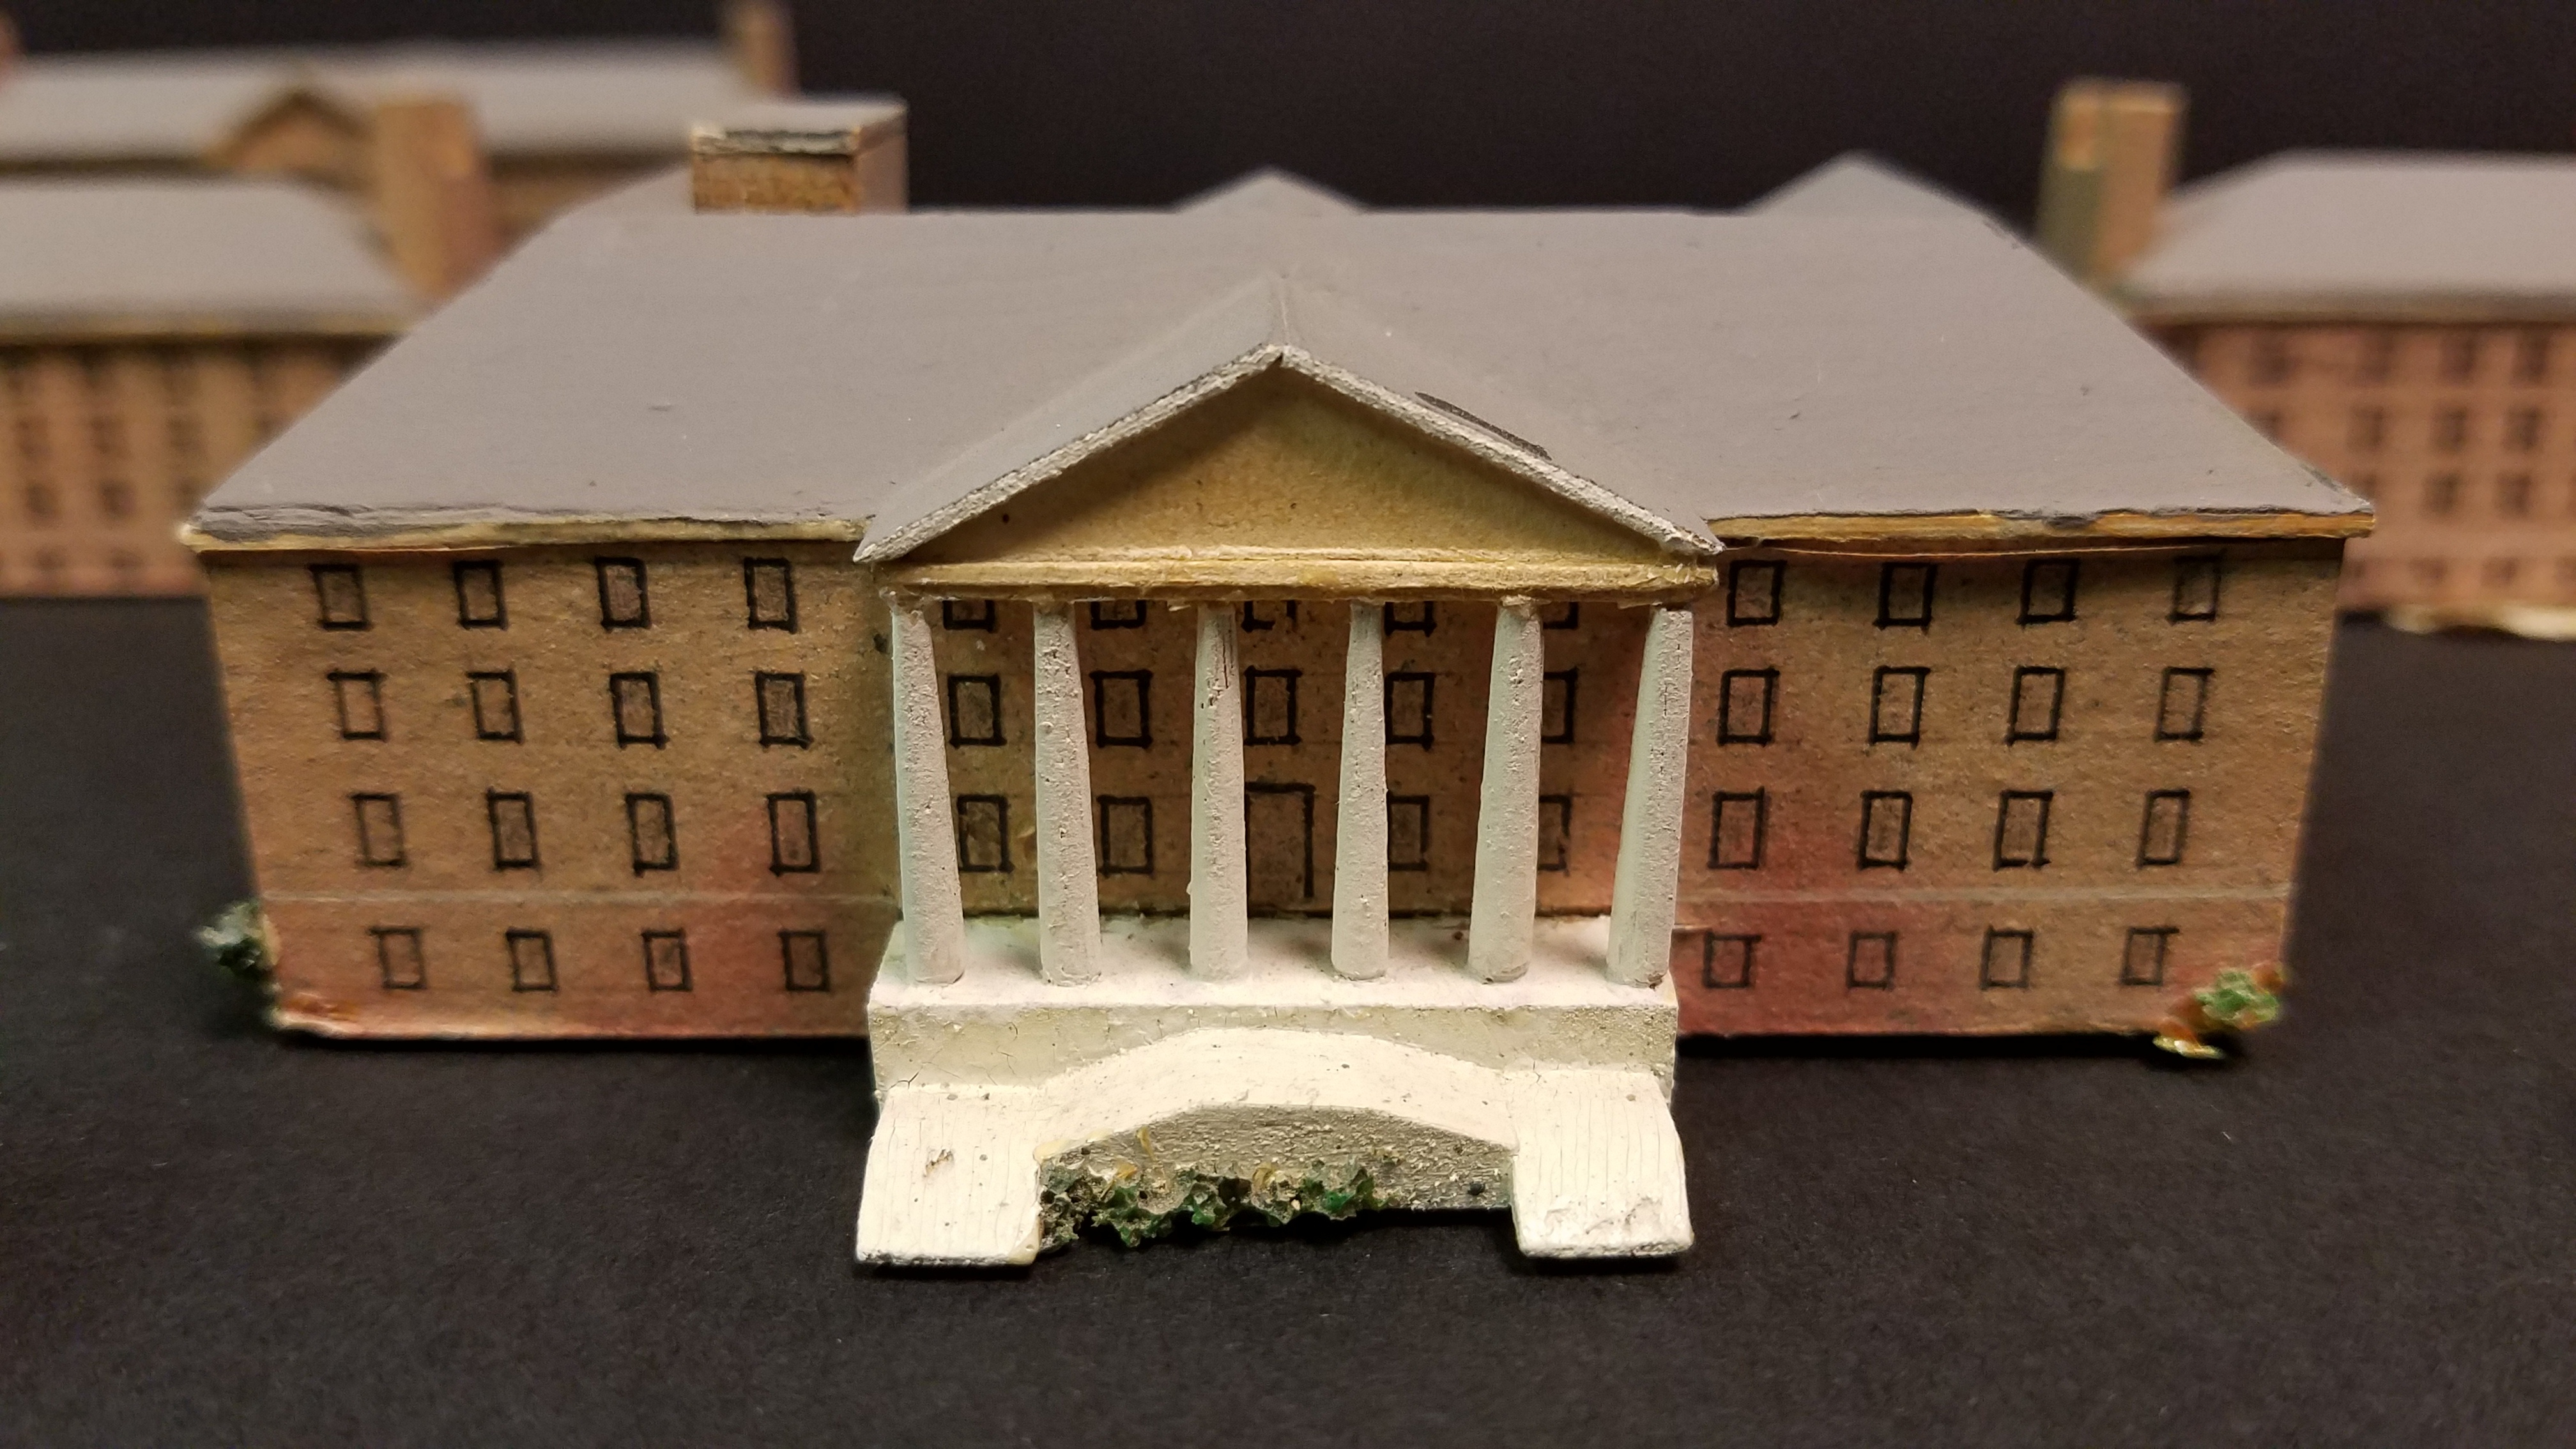 Paper model of Building 1